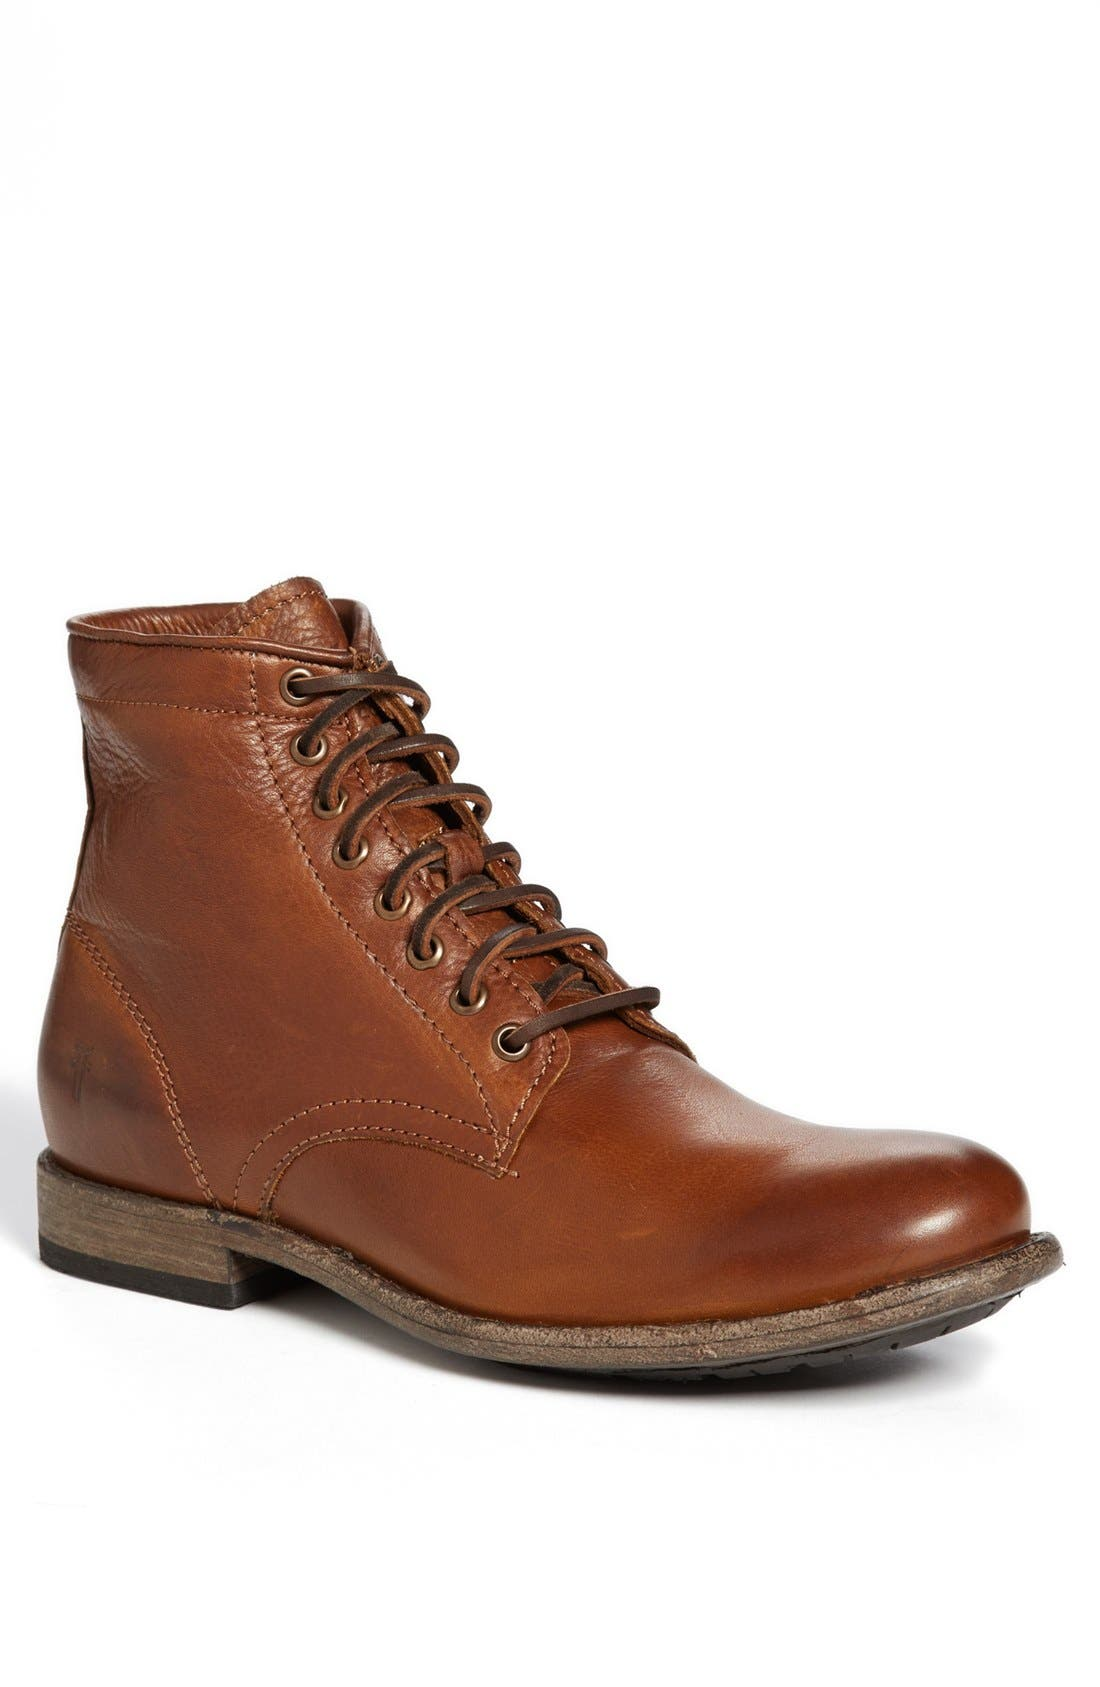 Main Image - Frye 'Tyler' Plain Toe Boot (Men) (Regular Retail Price: $318.00)